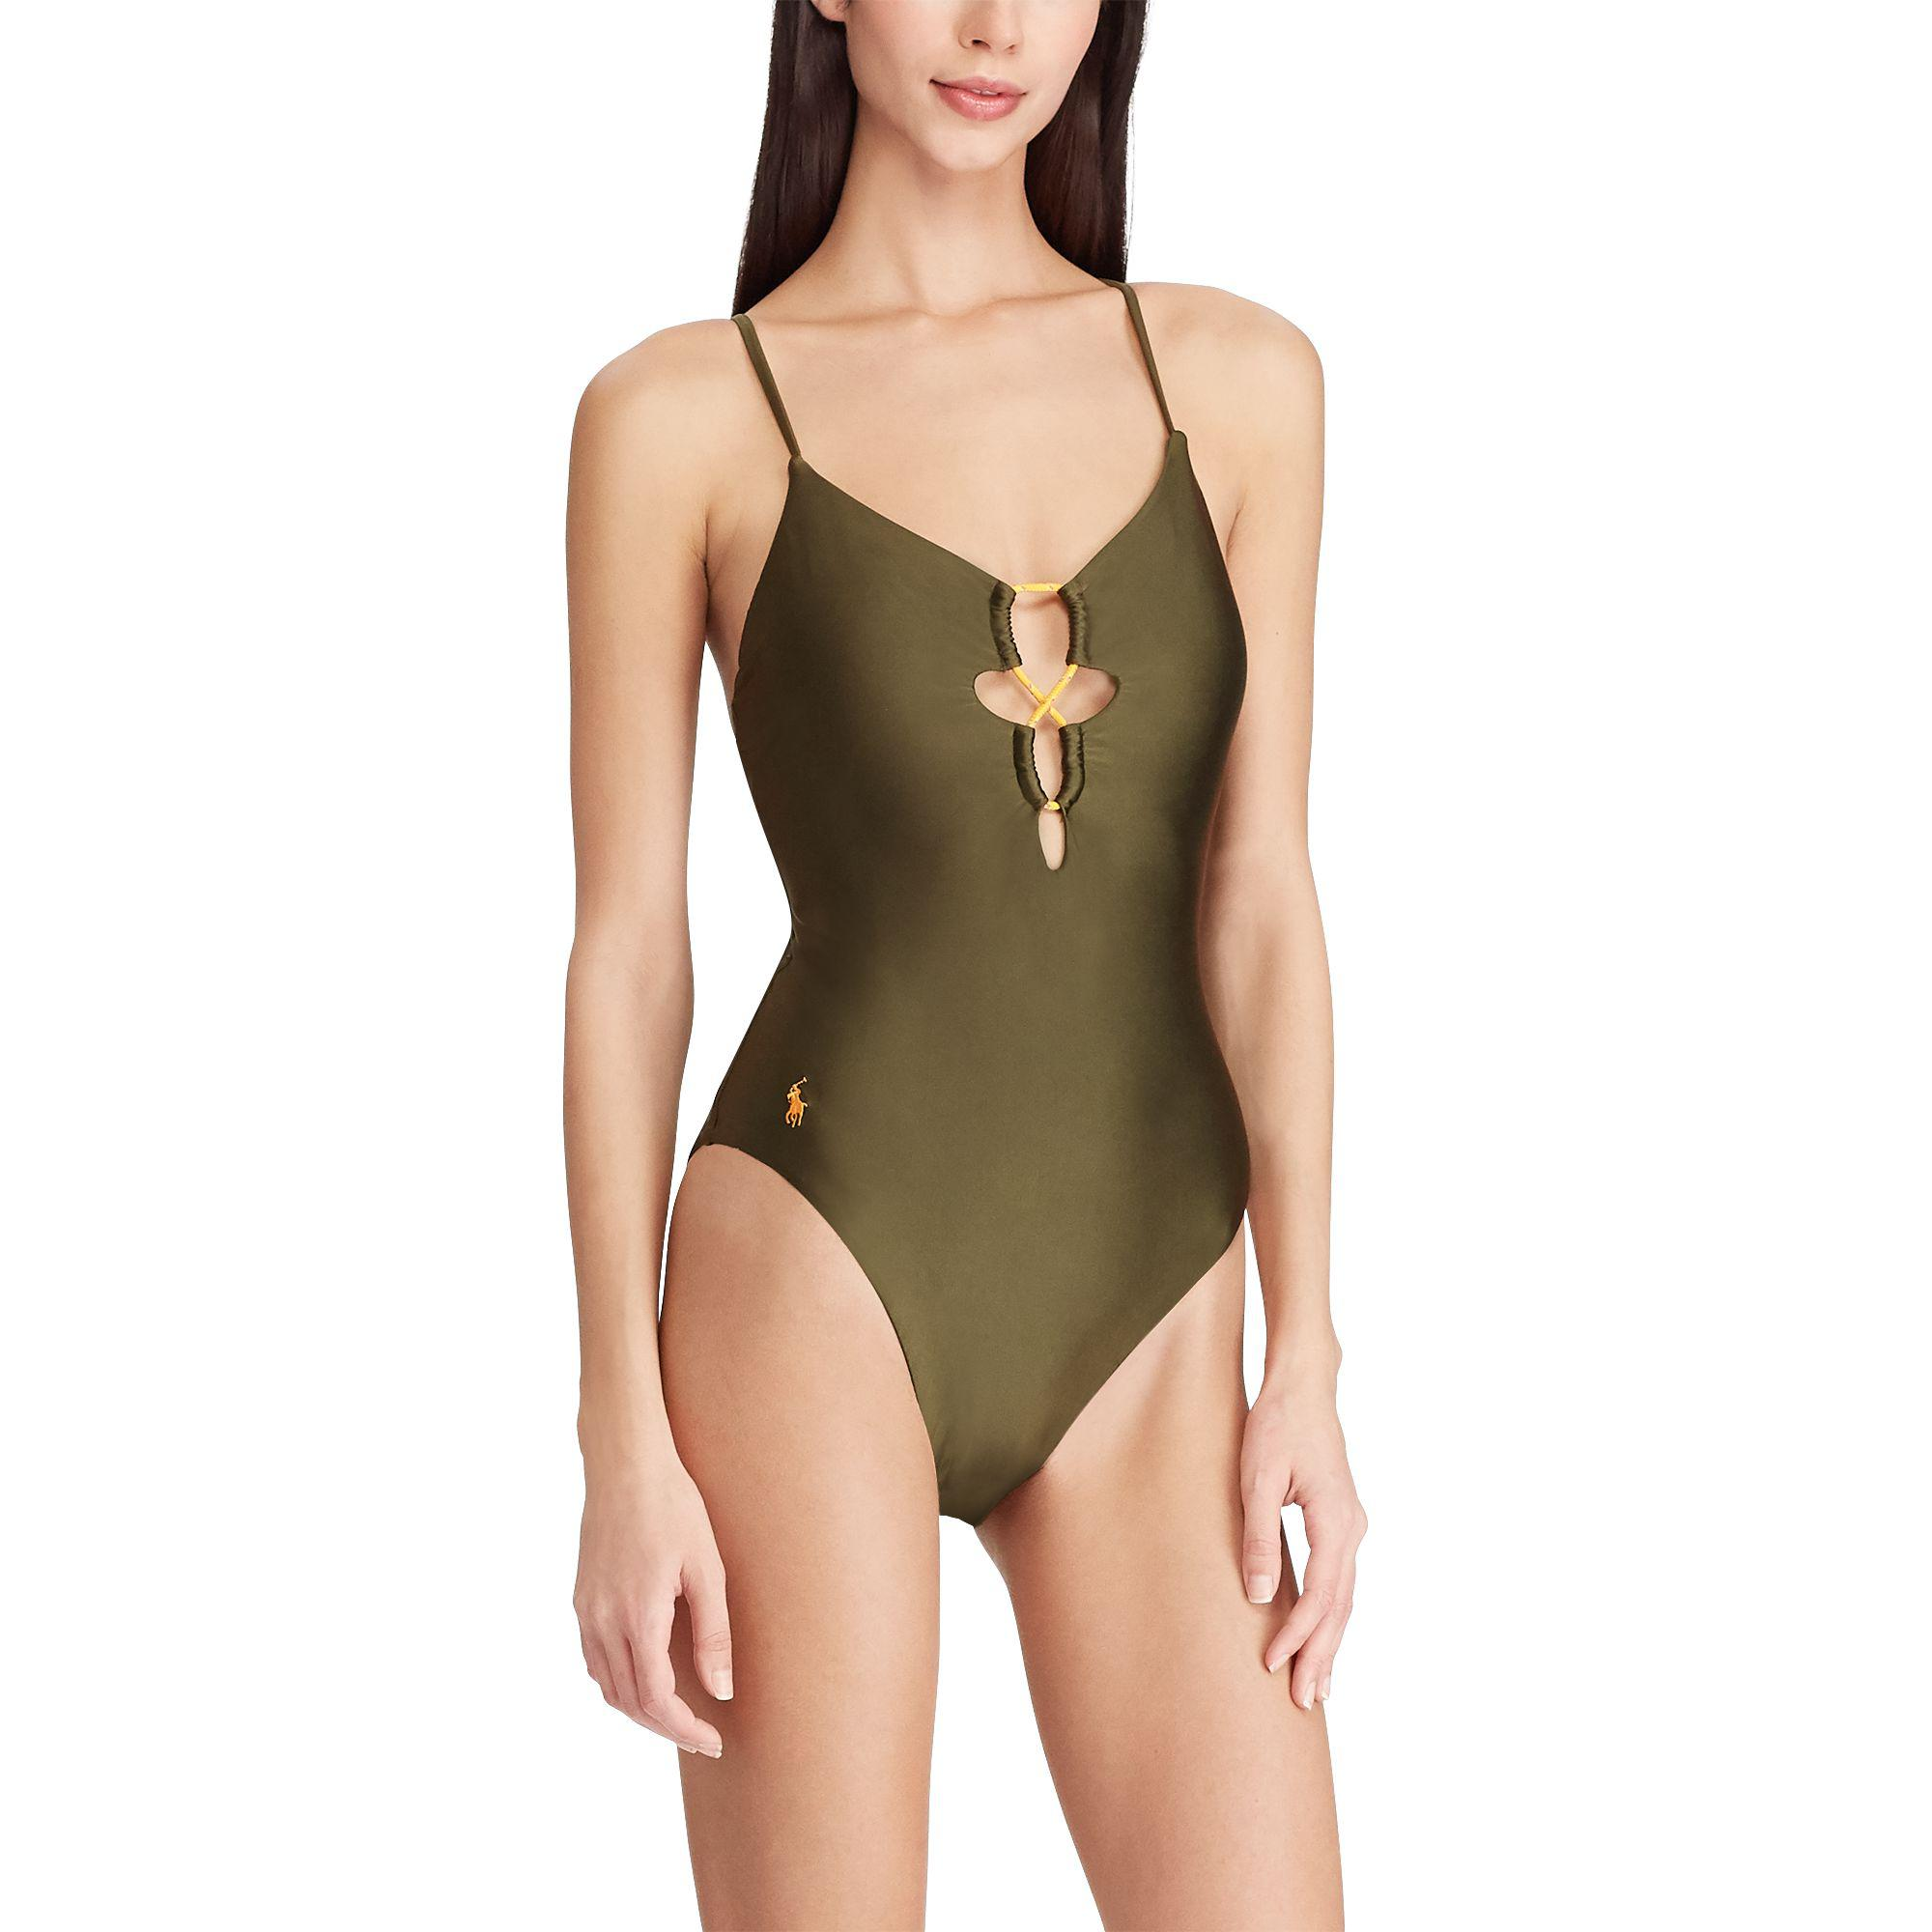 628bfa22de978 Polo Ralph Lauren - Green Bungee One-piece Swimsuit - Lyst. View fullscreen